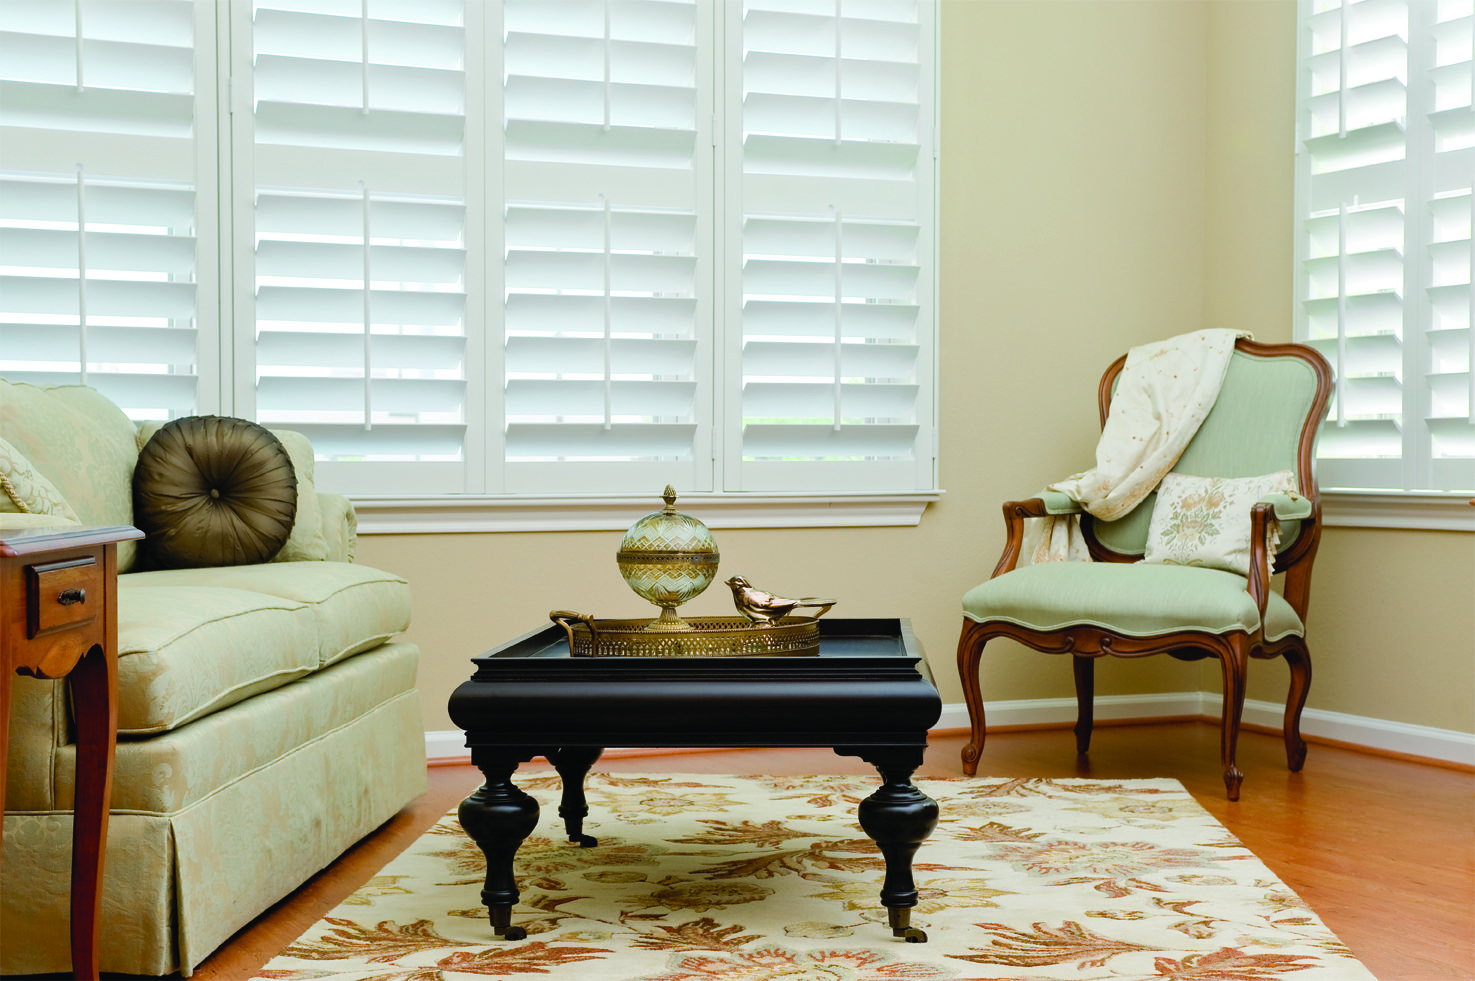 Window treatment options: shutters. Architecture accents: trim, crown molding.